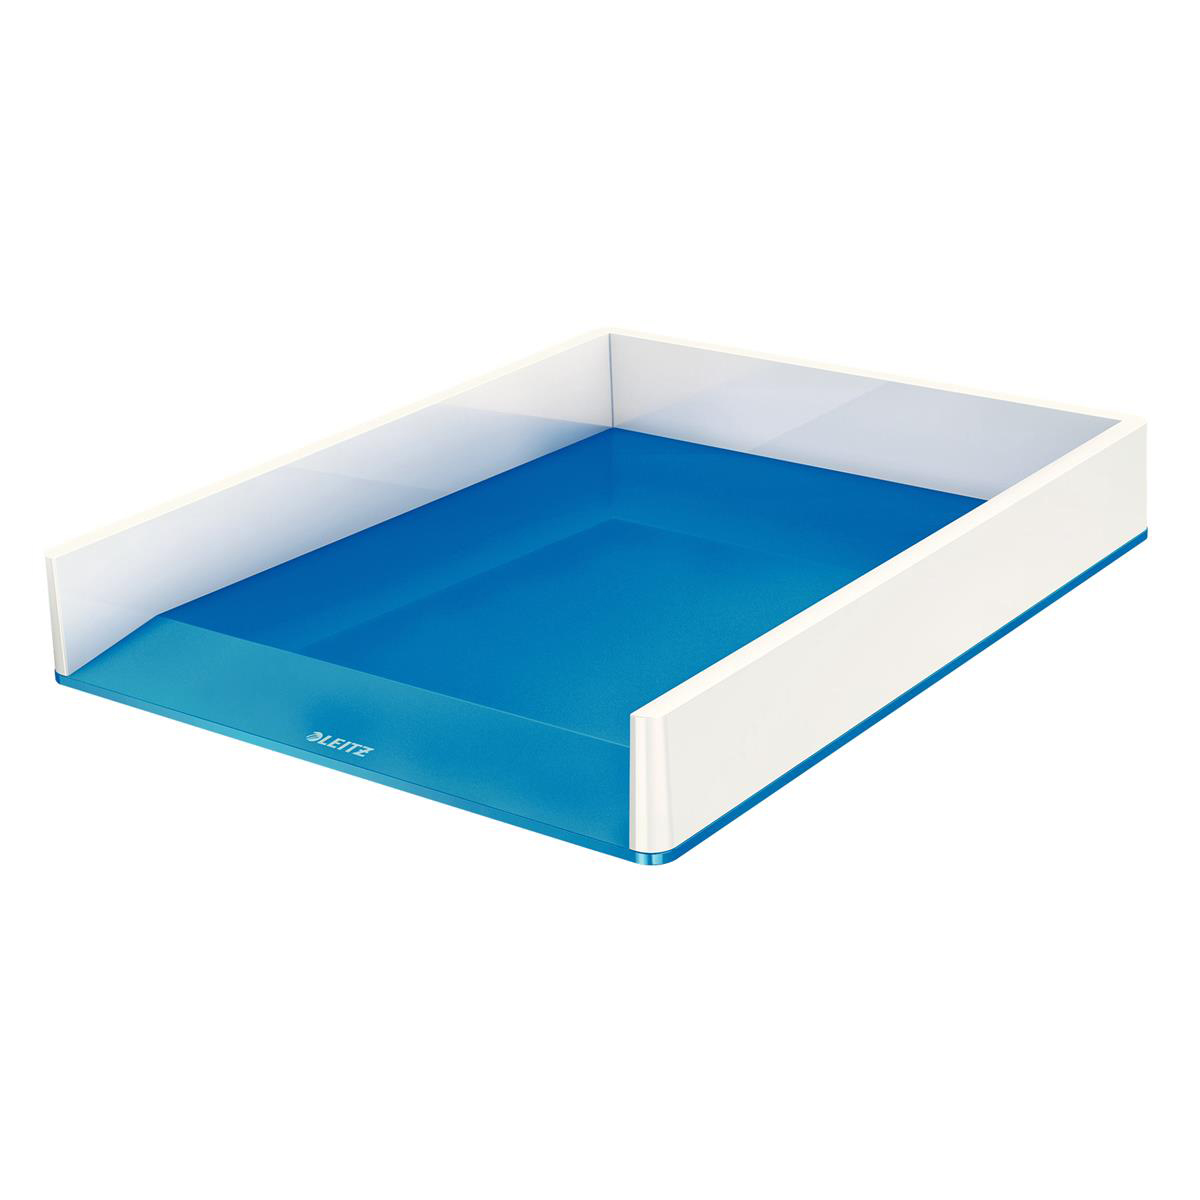 Leitz WOW Letter Tray Duo Large Opening Vertical Stacking A4/C4/Folio/Letter White/Blue Ref 53611036